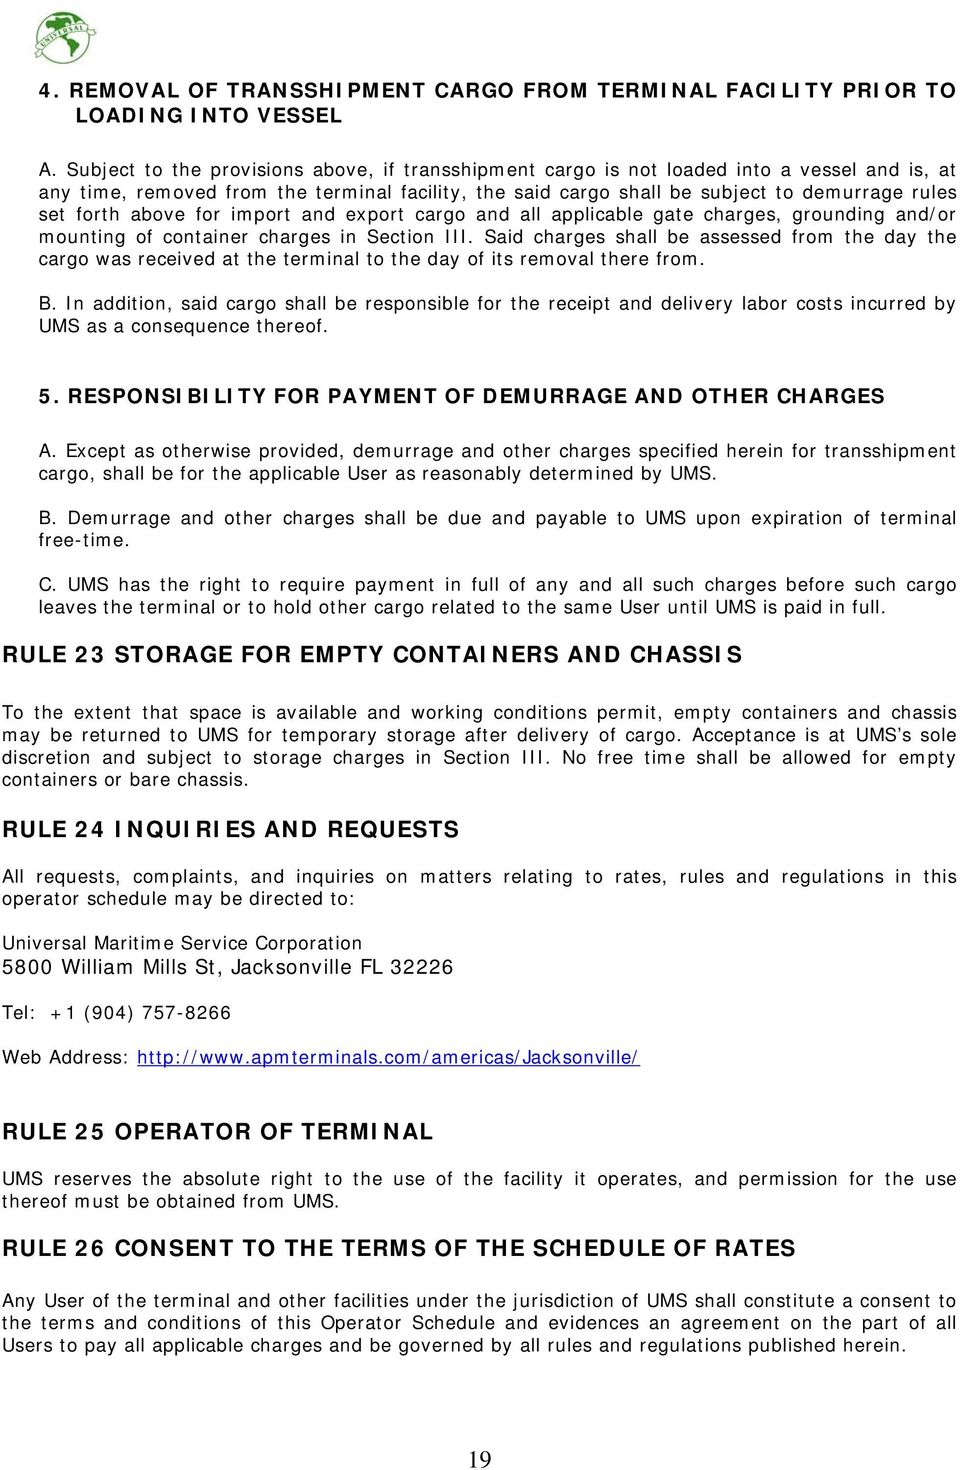 forth above for import and export cargo and all applicable gate charges, grounding and/or mounting of container charges in Section III.